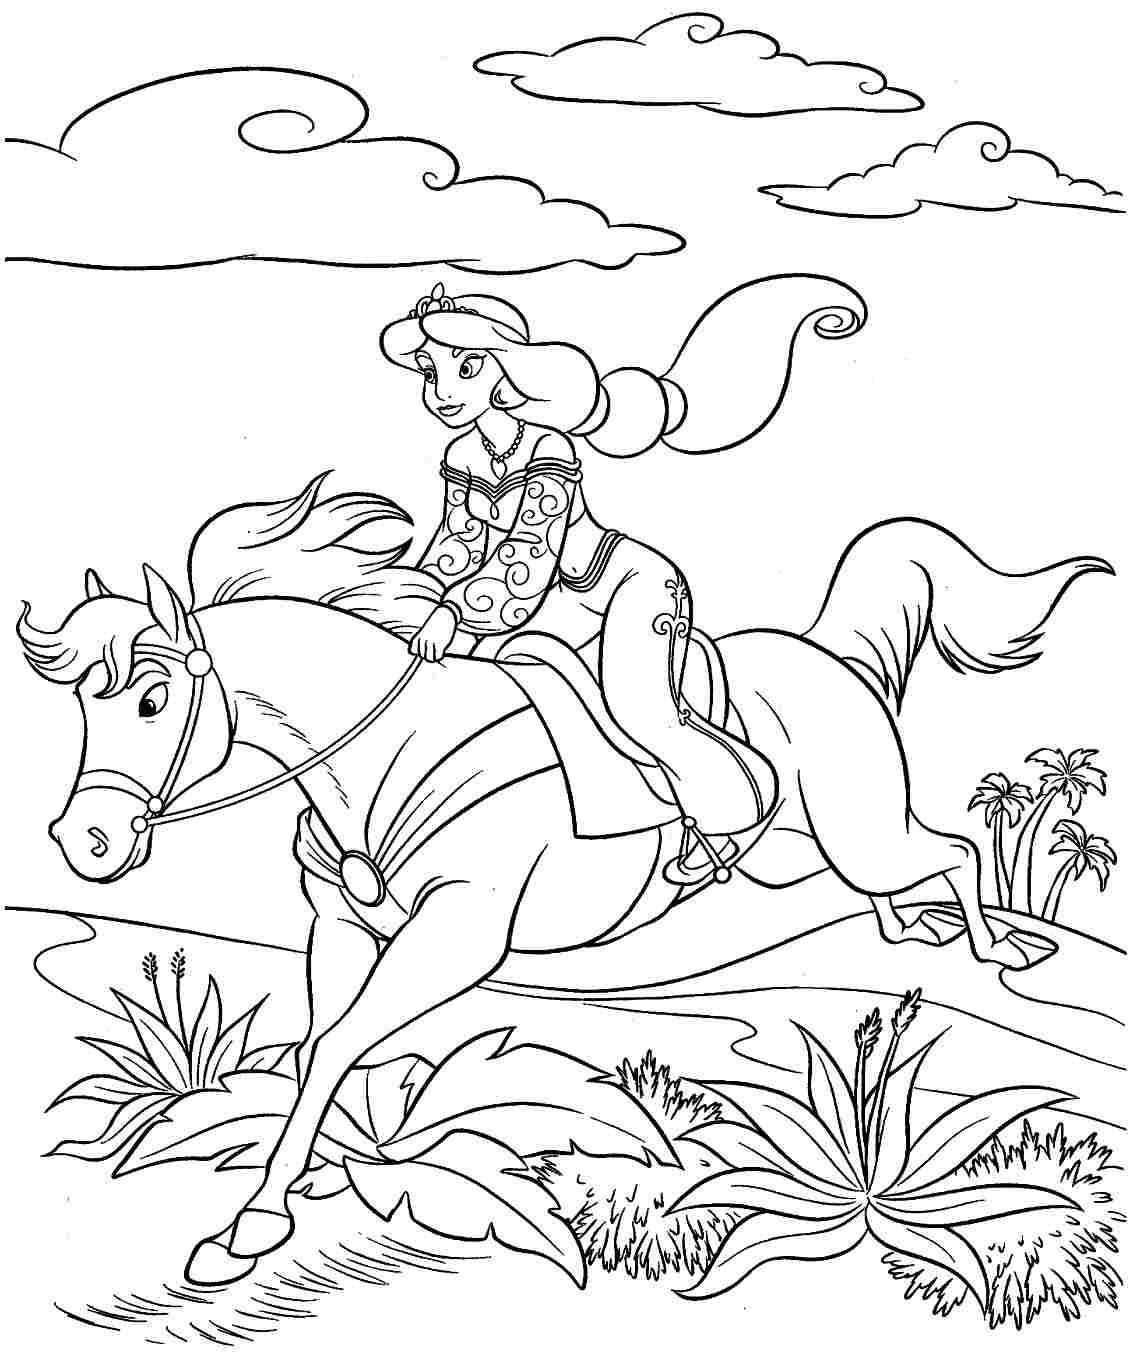 Princess coloring book pages - Coloring Pages Disney Princess Jasmine Printable For Kids Boys 55383